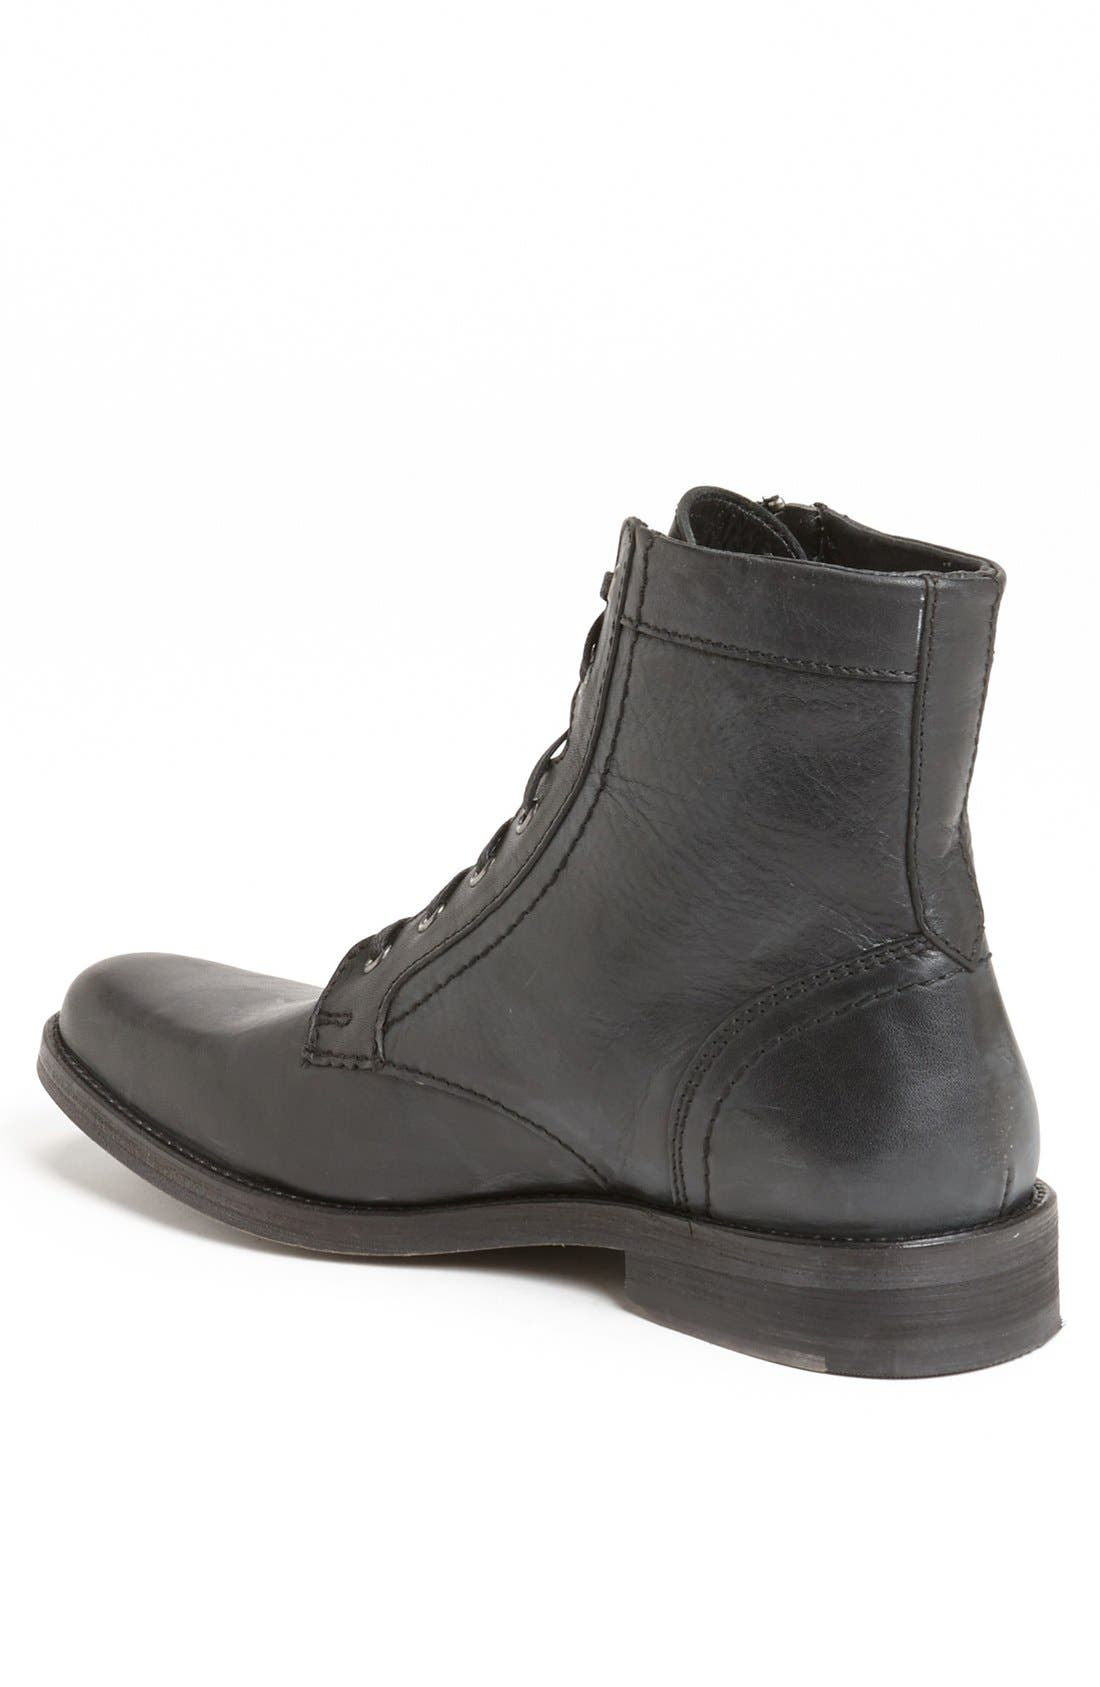 Alternate Image 2  - The Rail 'Merida' Plain Toe Boot